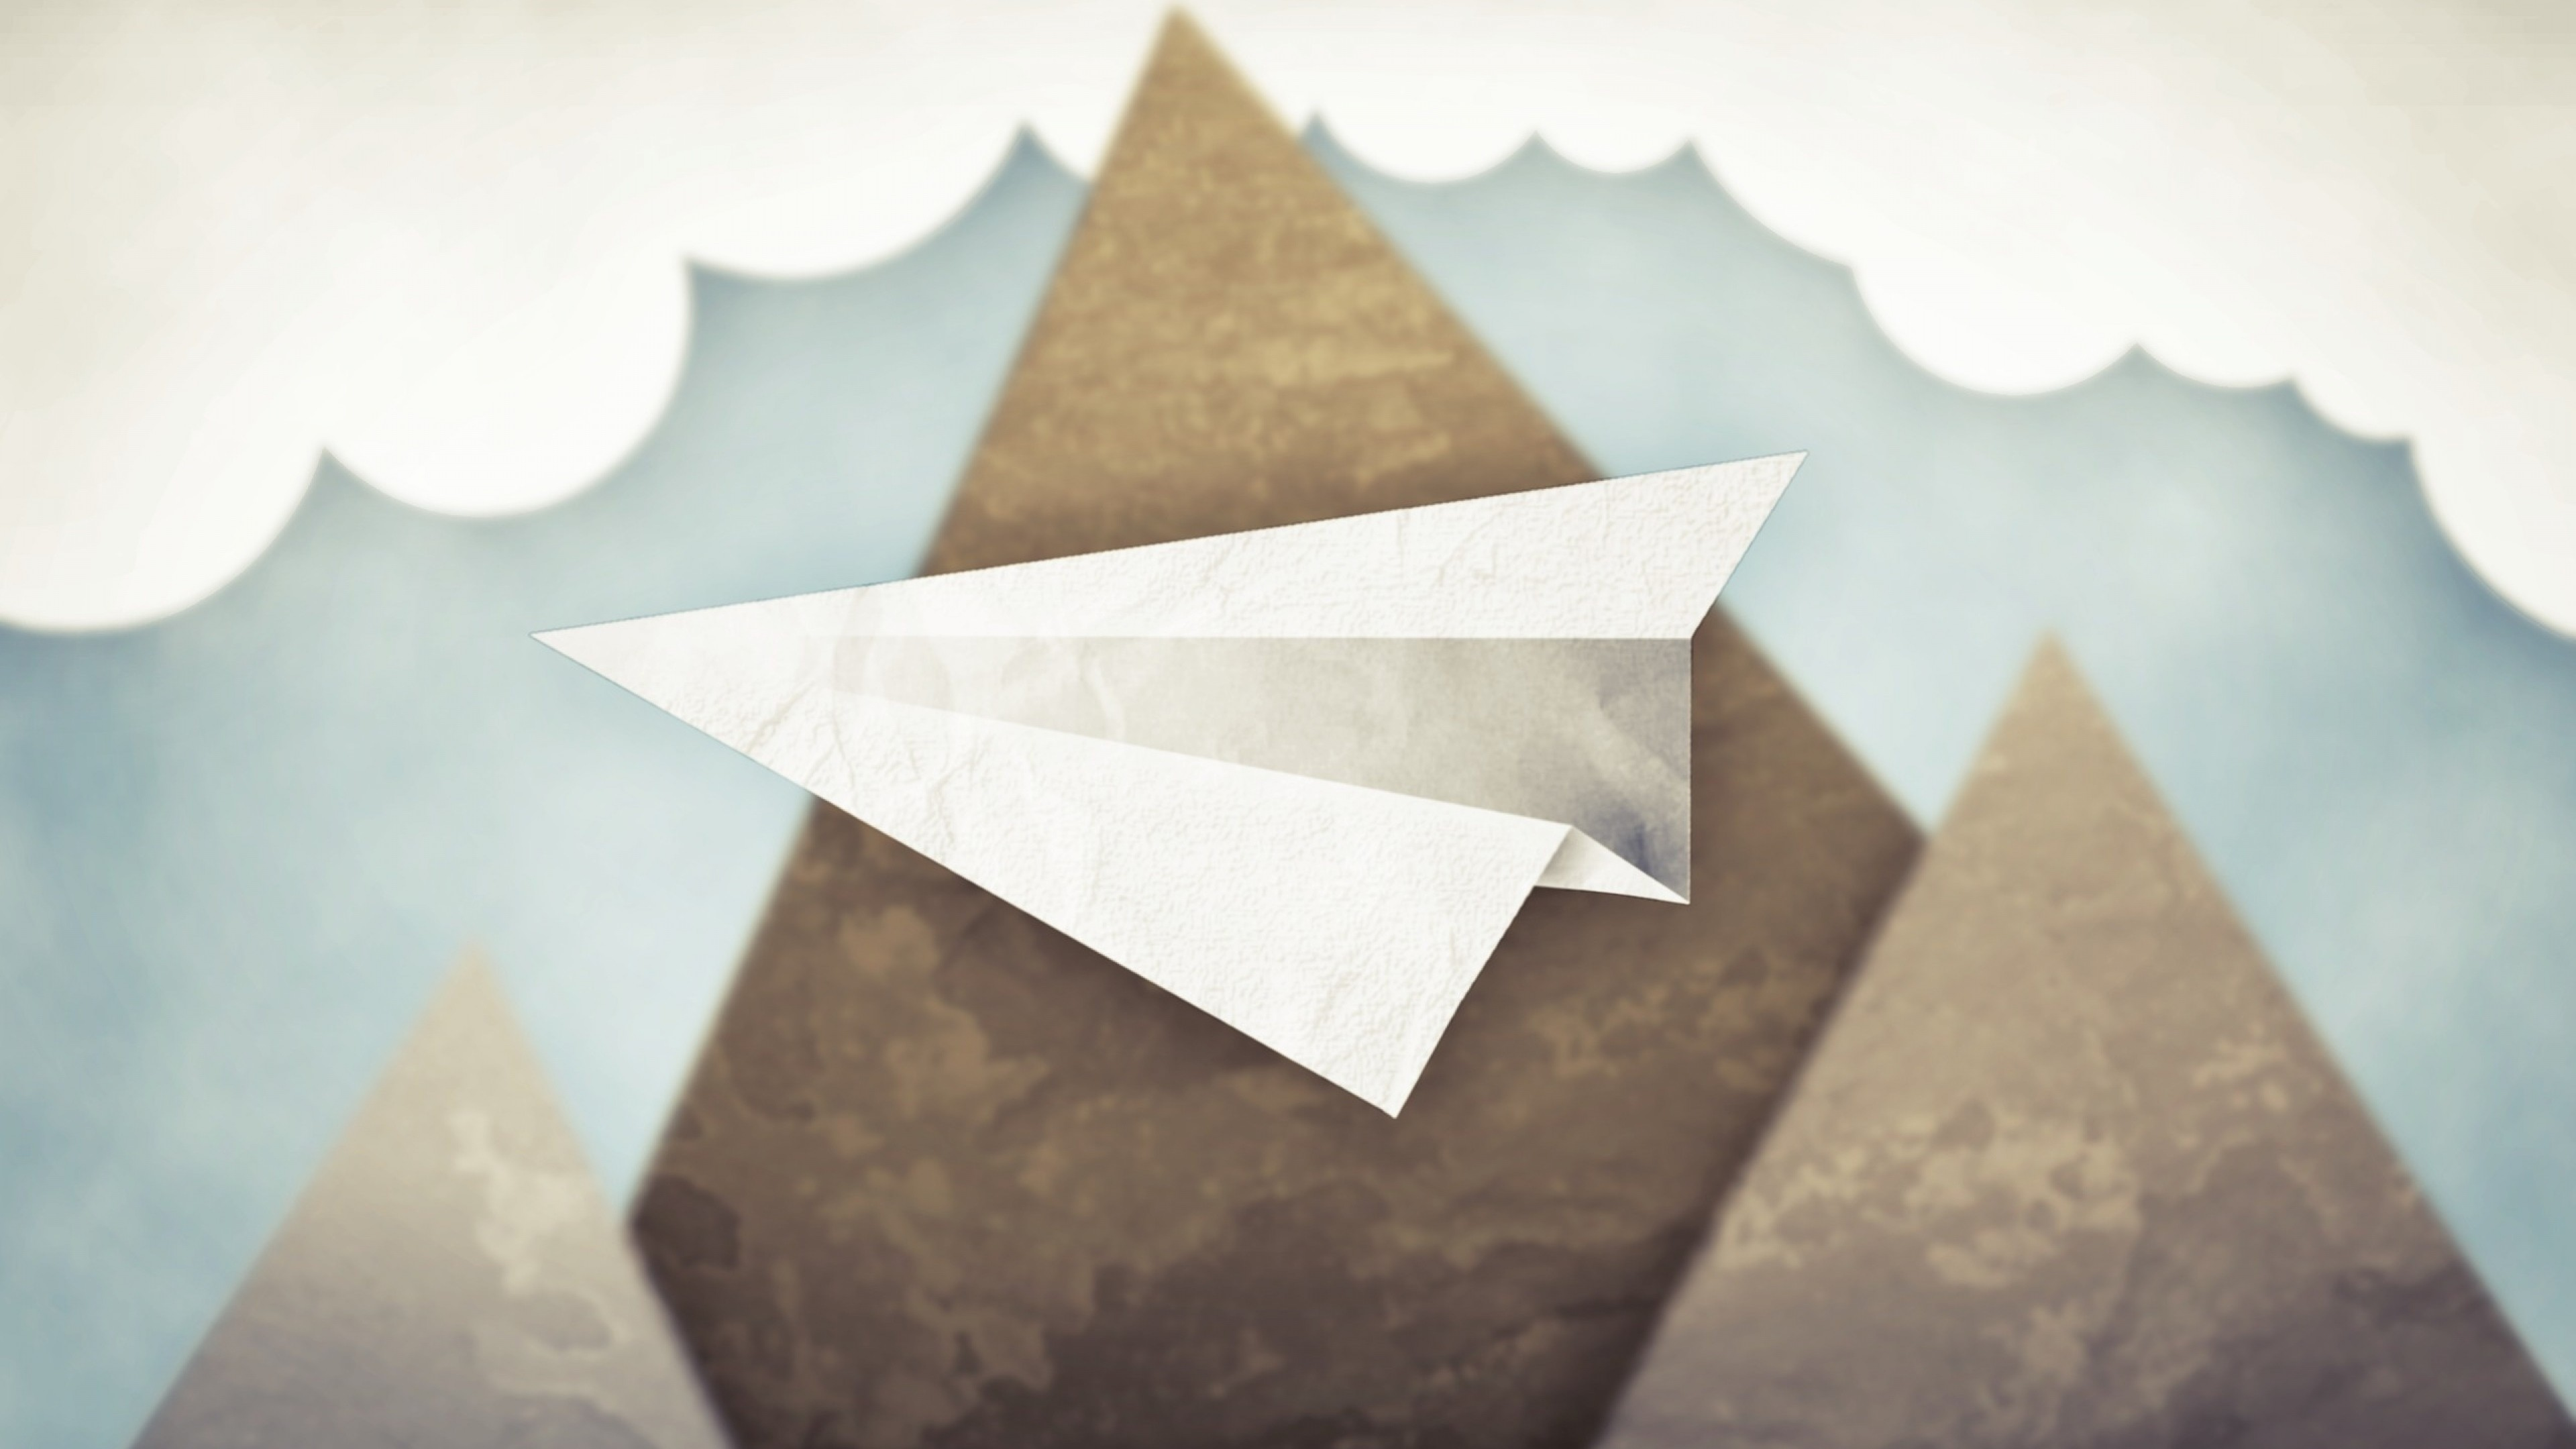 Preview wallpaper minimalism, mountains, clouds, sky, paper airplane  3840×2160